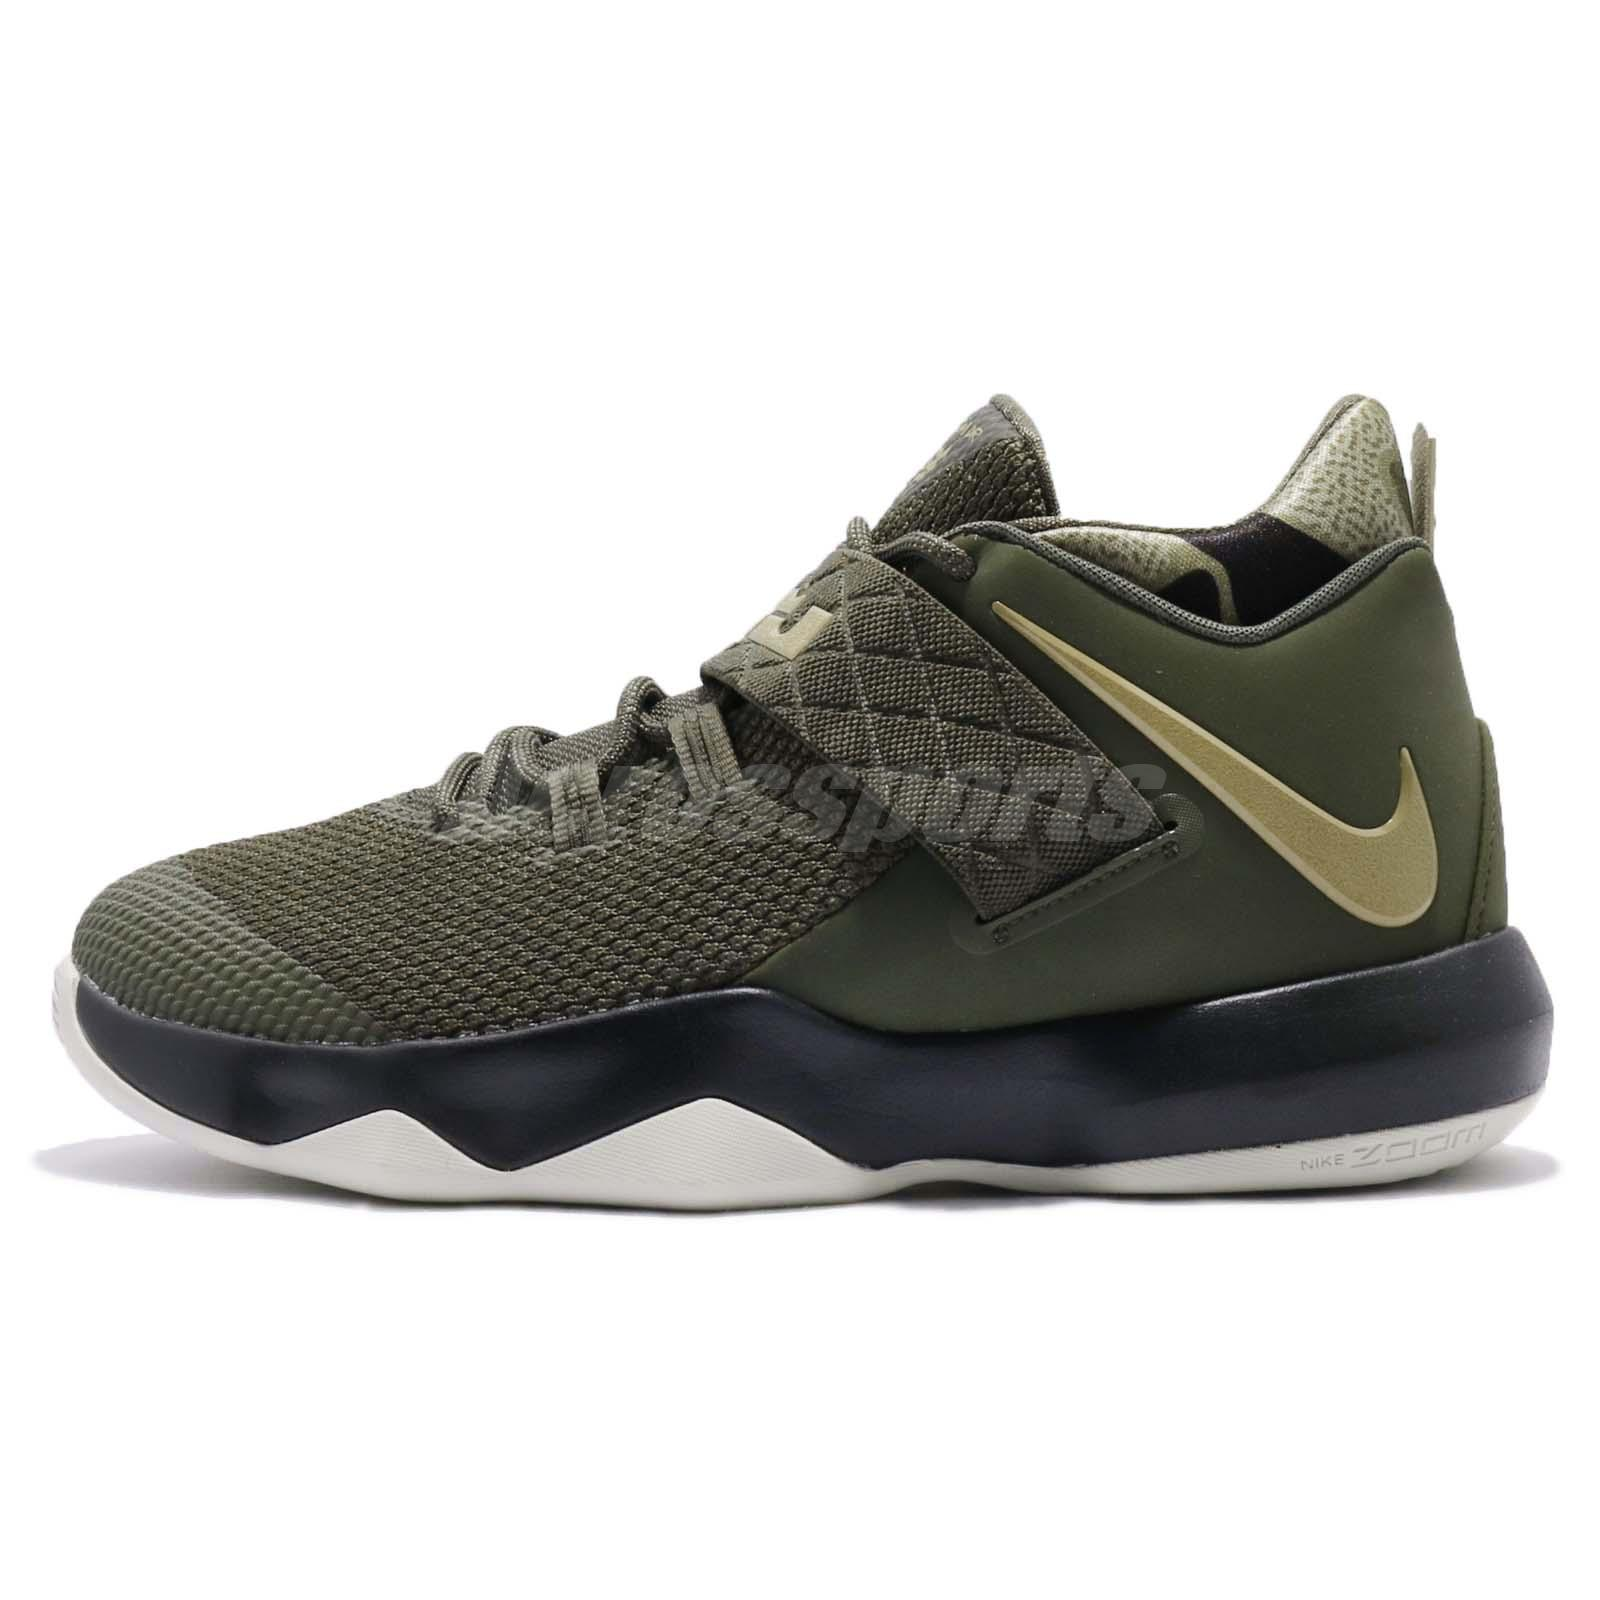 411718688ff47 Nike Ambassador X 10 LeBron James Cargo Olive Men Basketball Shoes  AH7580-300